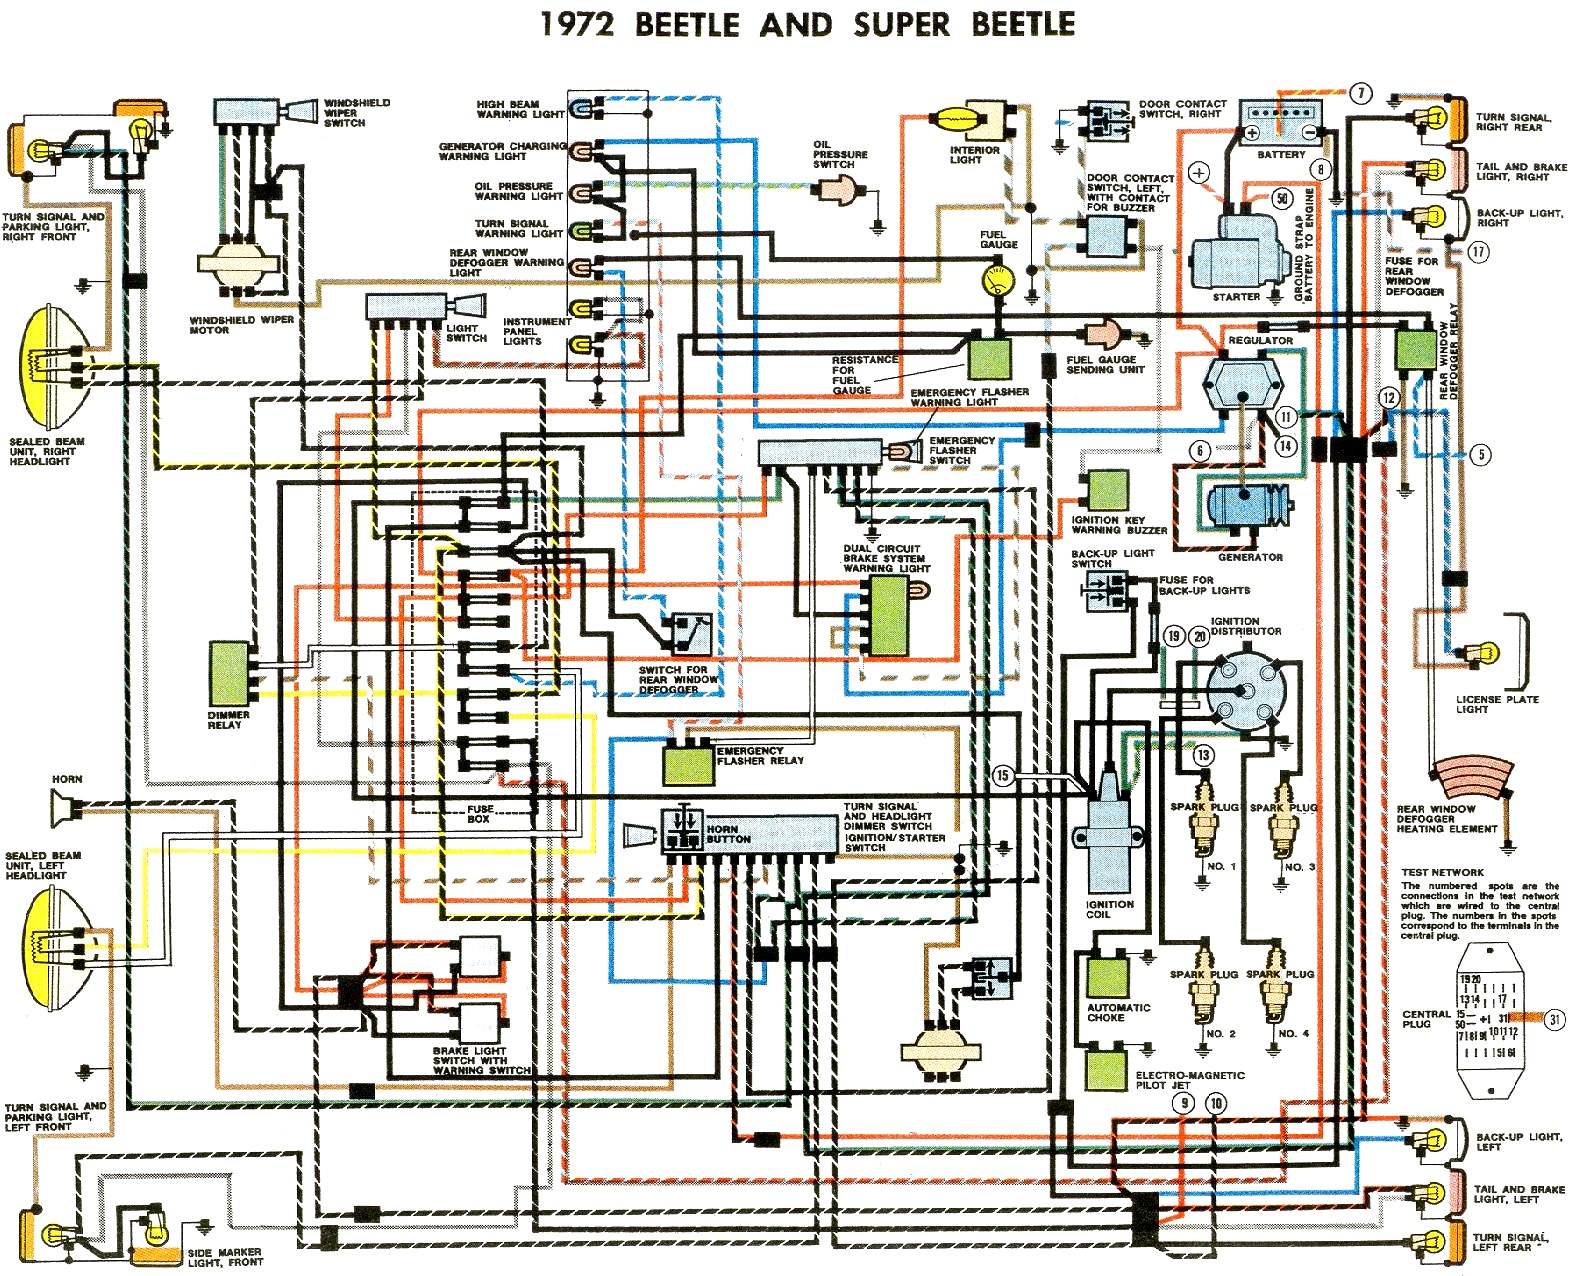 bug_72 1972 beetle wiring diagram thegoldenbug com 1969 beetle wiring diagram at sewacar.co